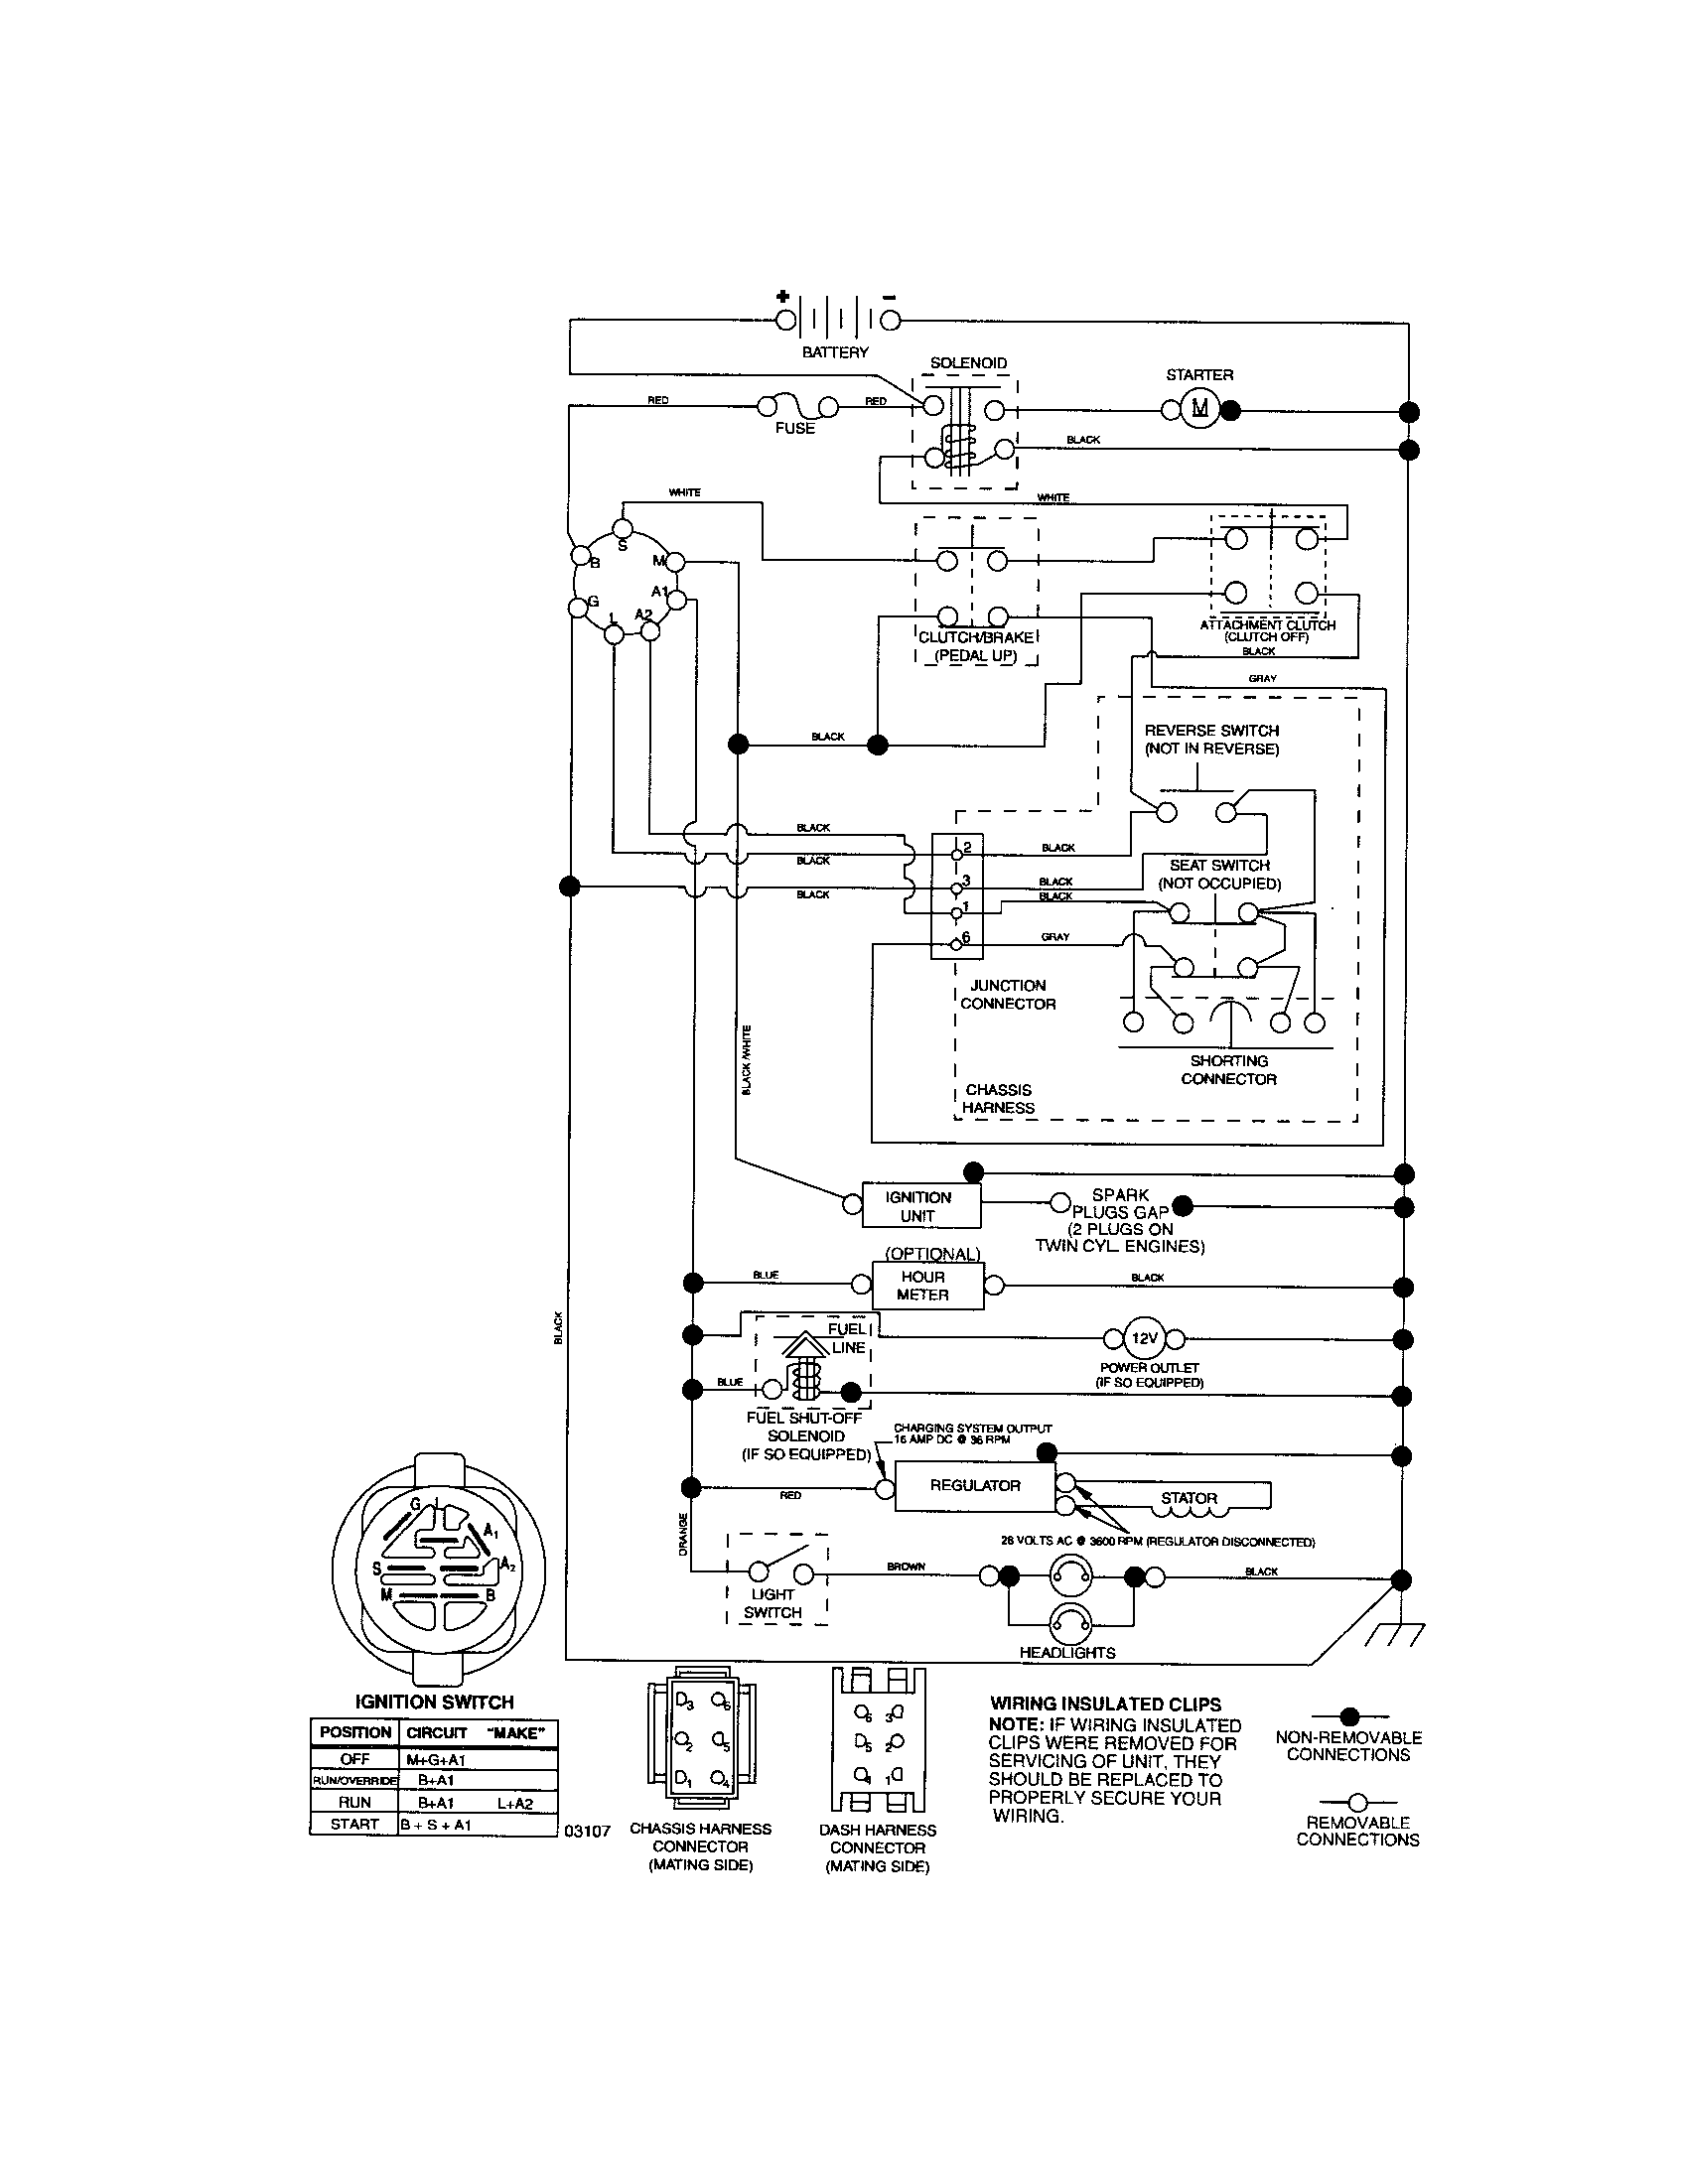 hight resolution of power king 1614 tractor wiring diagram wiring librarycraftsman riding mower electrical diagram wiring diagram craftsman marshall